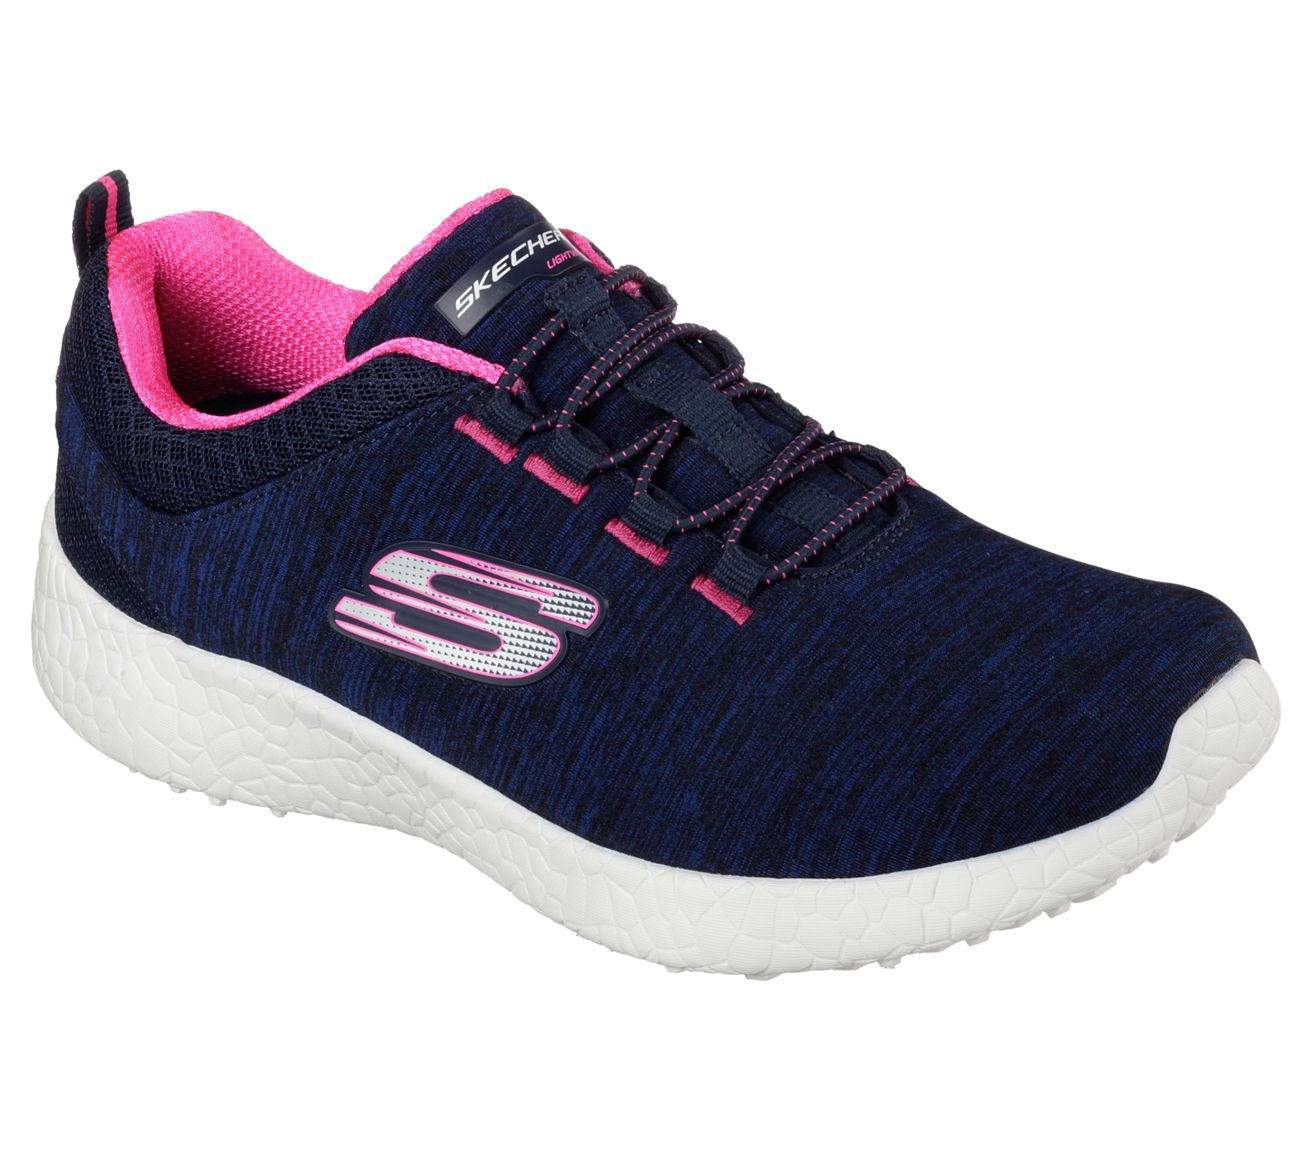 Skechers Chile - Women's Energy Burst